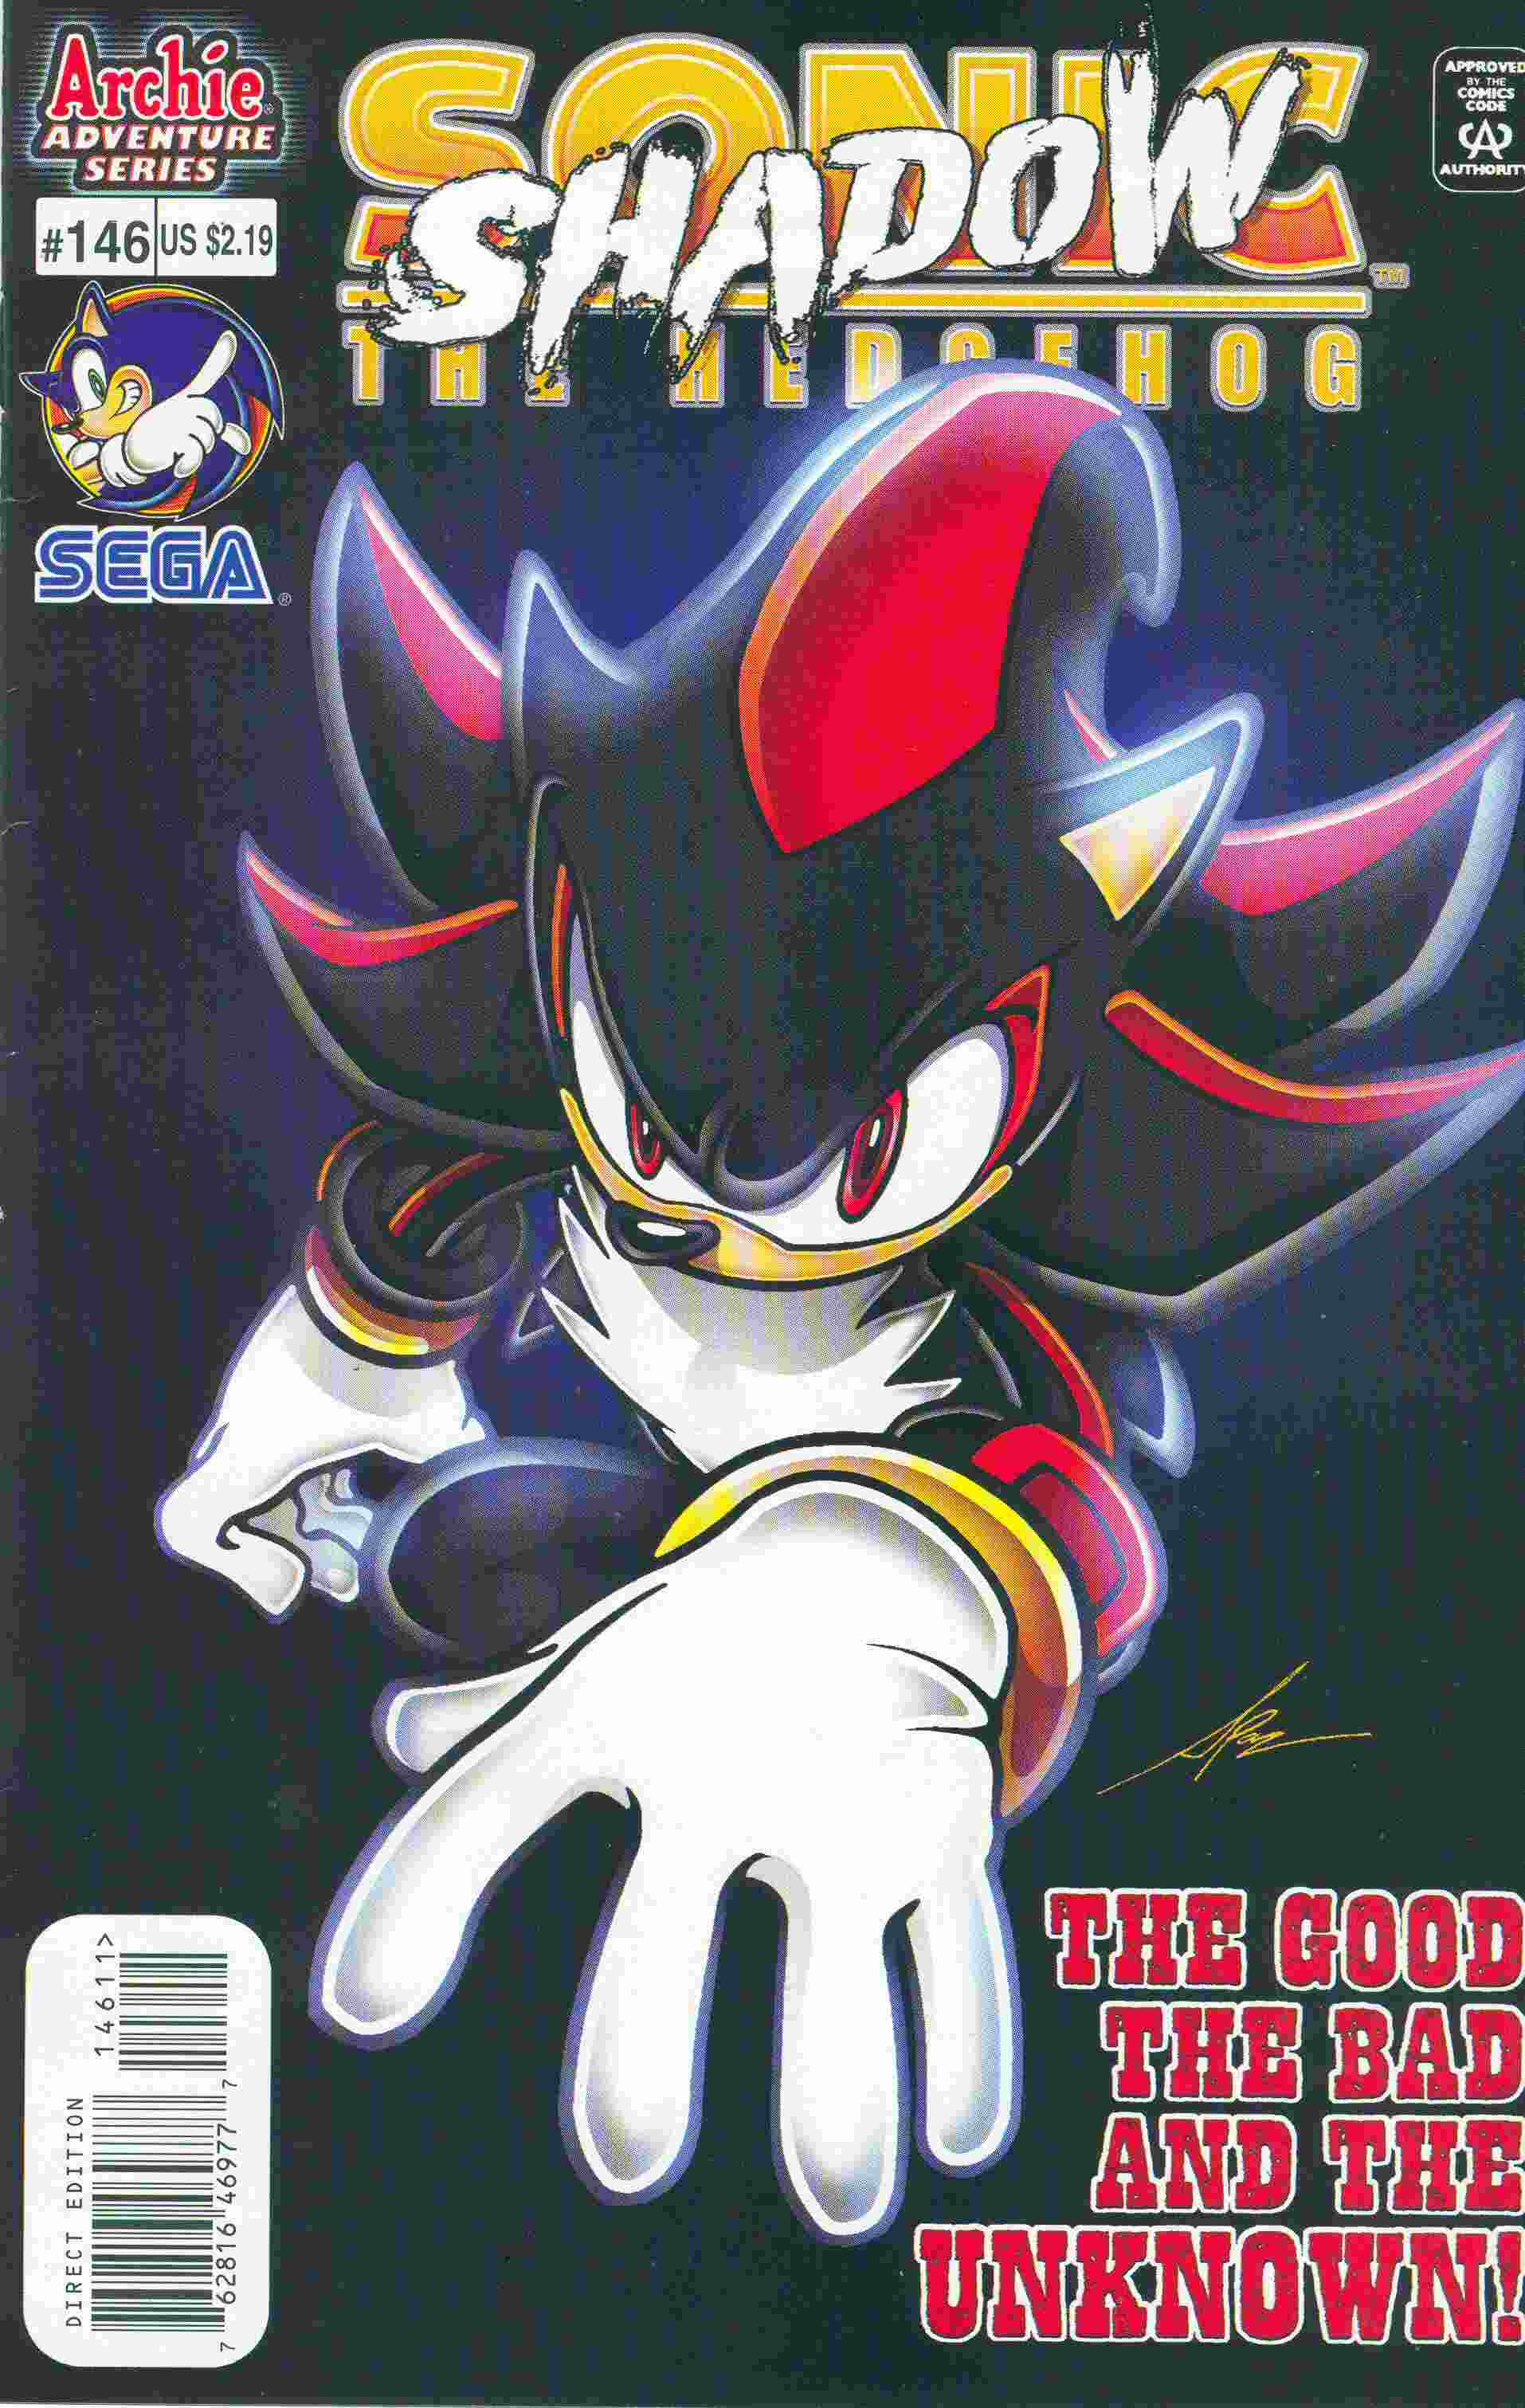 Sonic - Archie Adventure Series May 2005 Comic cover page